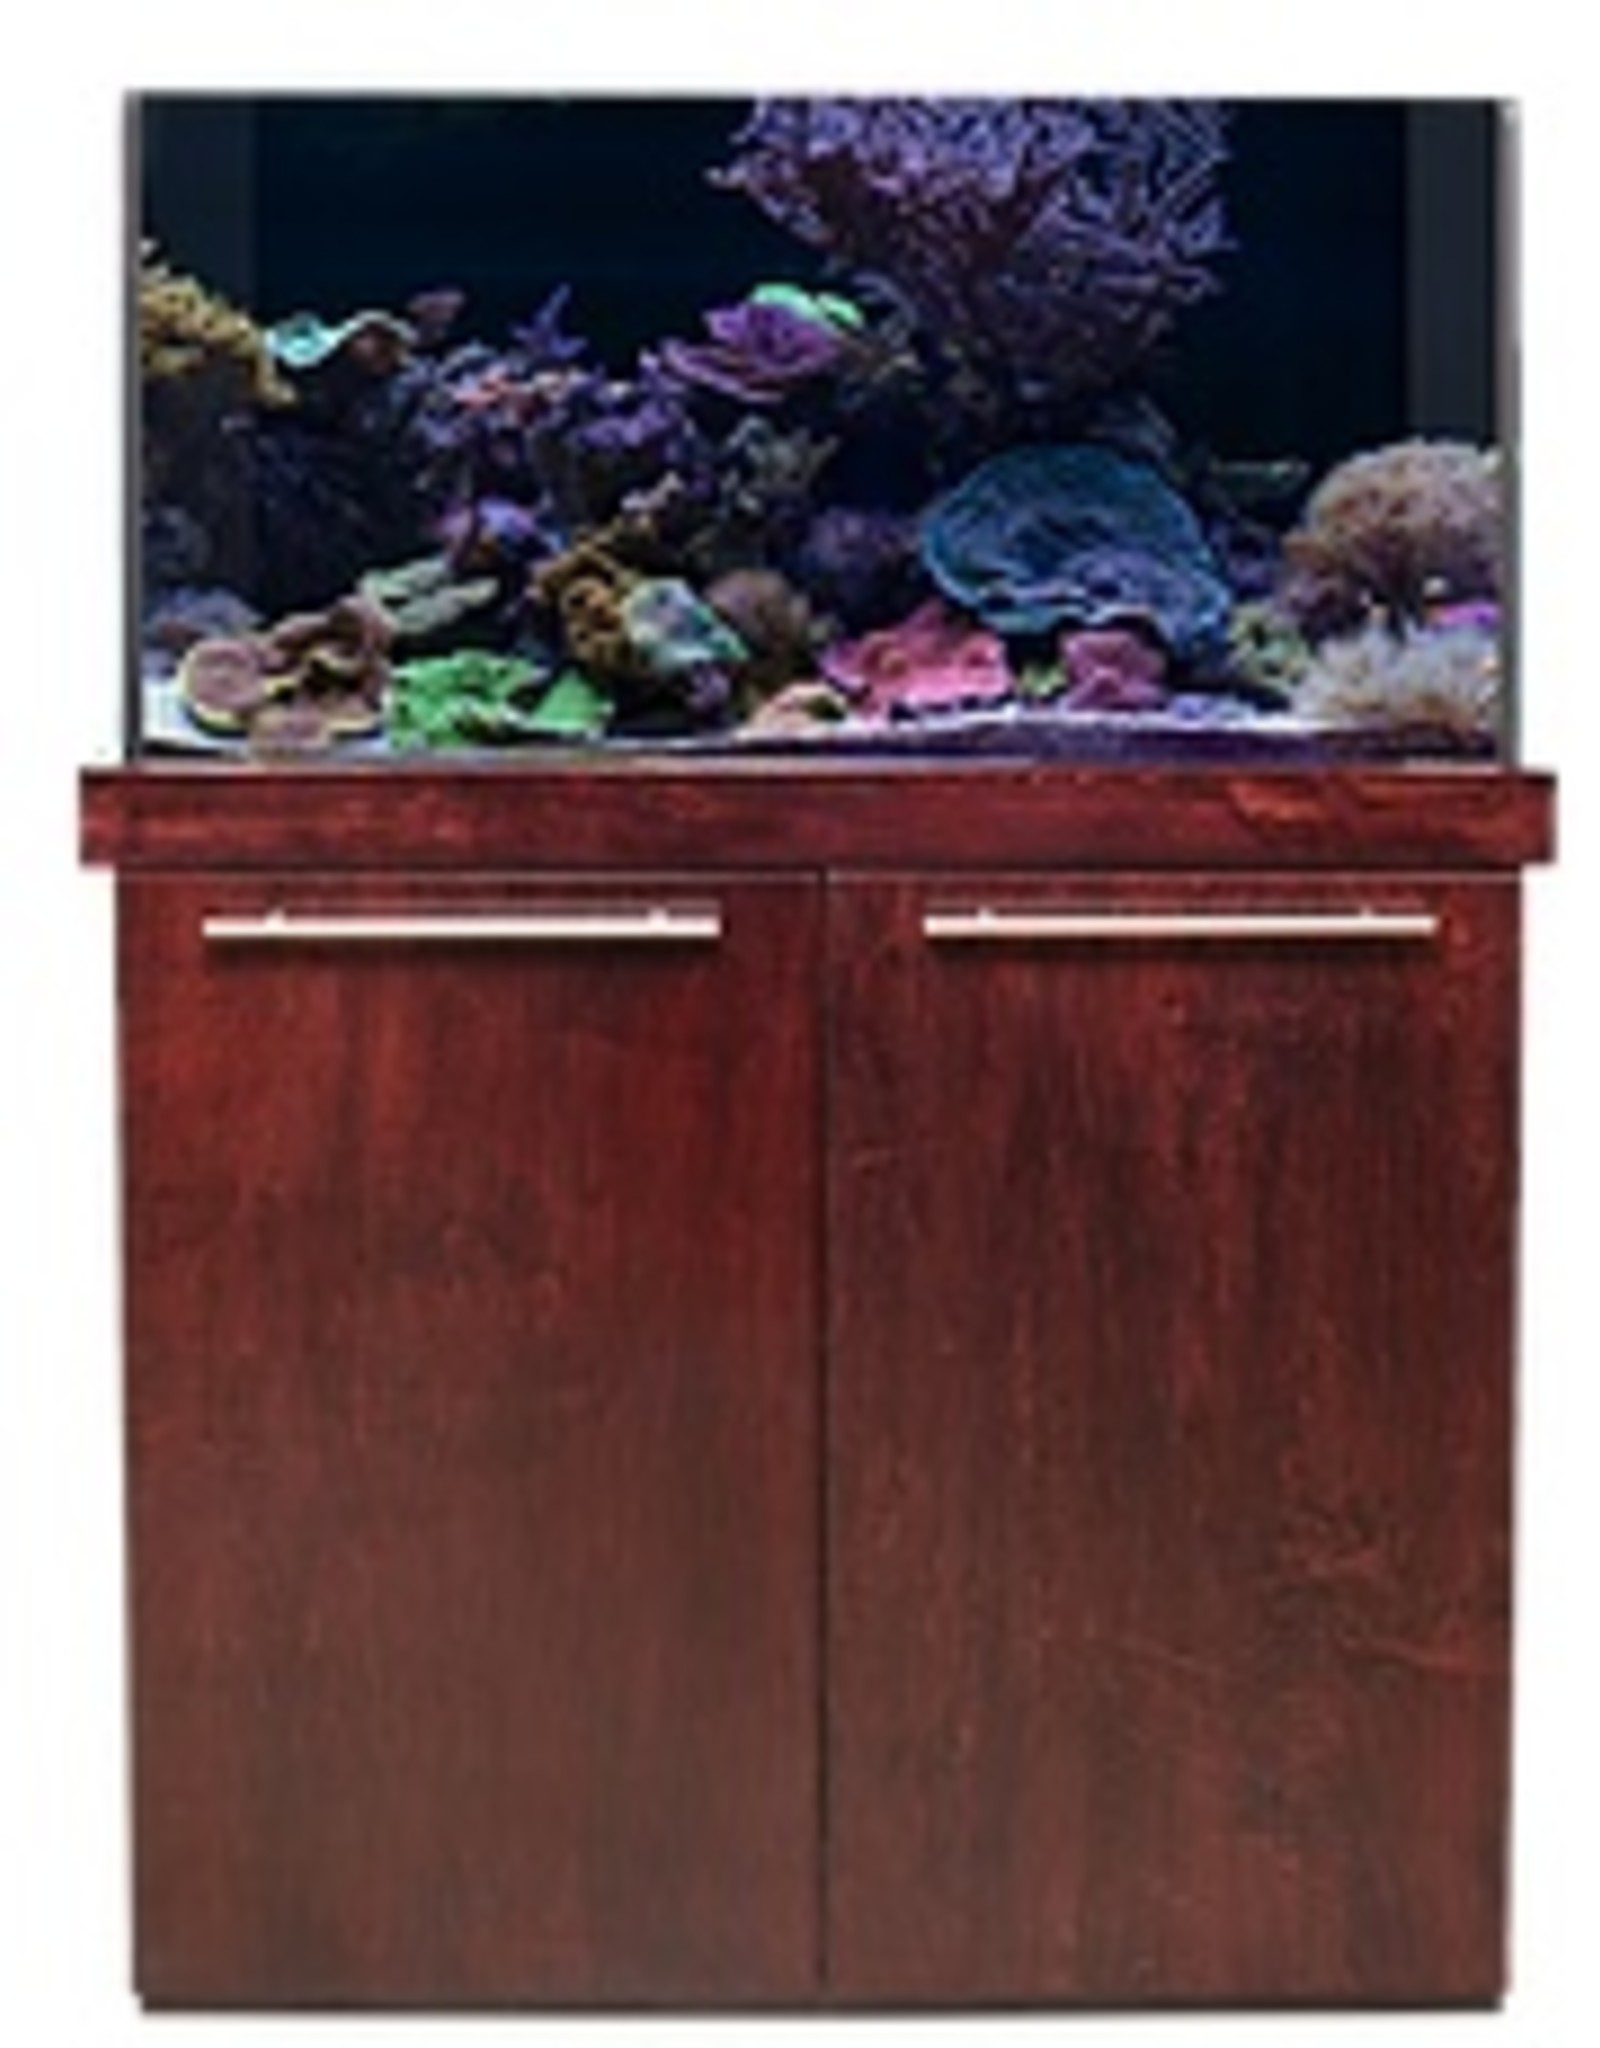 PLANET AQUARIUM Crystaline Tank Kit - 36""